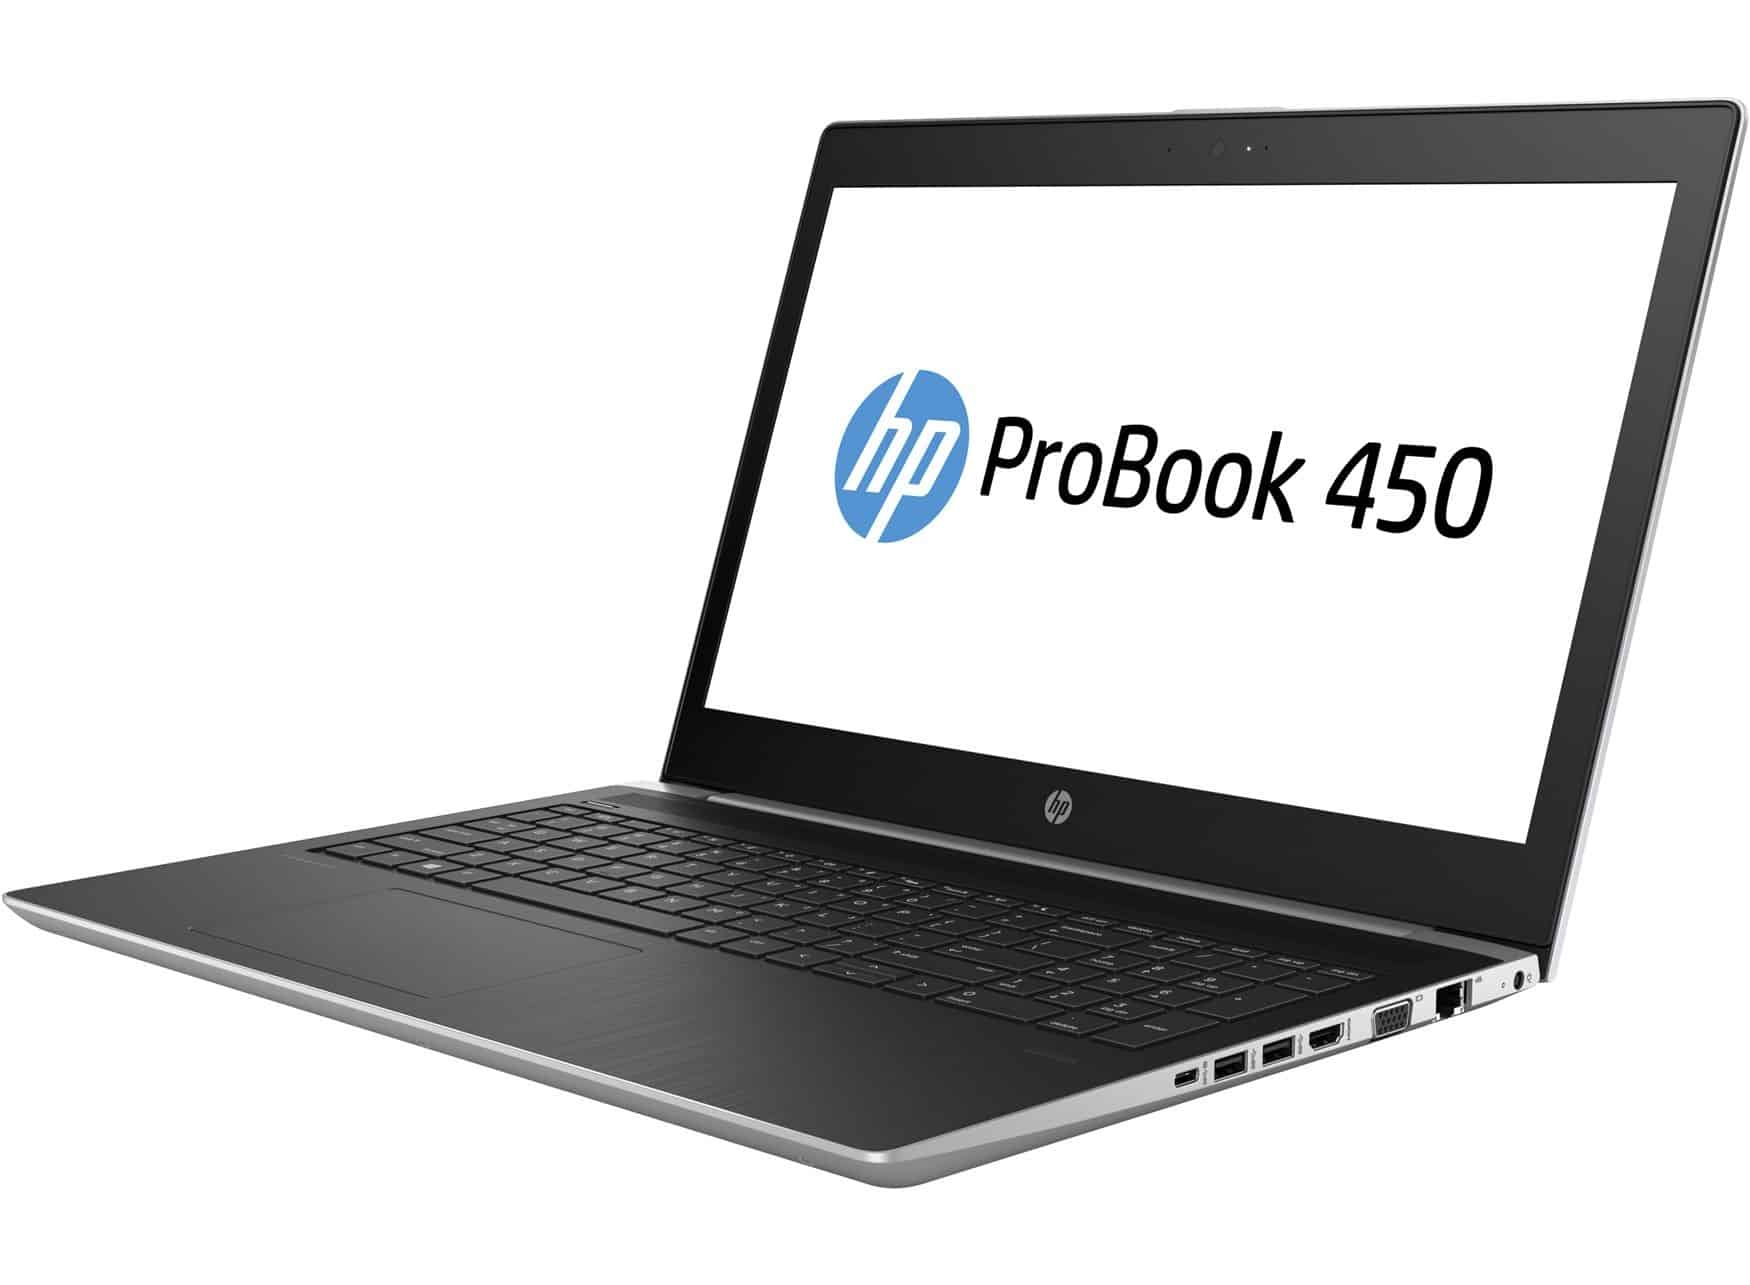 amazon HP Probook 450 G5 reviews HP Probook 450 G5 on amazon newest HP Probook 450 G5 prices of HP Probook 450 G5 HP Probook 450 G5 deals best deals on HP Probook 450 G5 buying a HP Probook 450 G5 lastest HP Probook 450 G5 what is a HP Probook 450 G5 HP Probook 450 G5 at amazon where to buy HP Probook 450 G5 where can i you get a HP Probook 450 G5 online purchase HP Probook 450 G5 HP Probook 450 G5 sale off HP Probook 450 G5 discount cheapest HP Probook 450 G5 HP Probook 450 G5 for sale HP Probook 450 G5 products HP Probook 450 G5 tutorial HP Probook 450 G5 specification HP Probook 450 G5 features HP Probook 450 G5 test HP Probook 450 G5 series HP Probook 450 G5 service manual HP Probook 450 G5 instructions HP Probook 450 G5 accessories